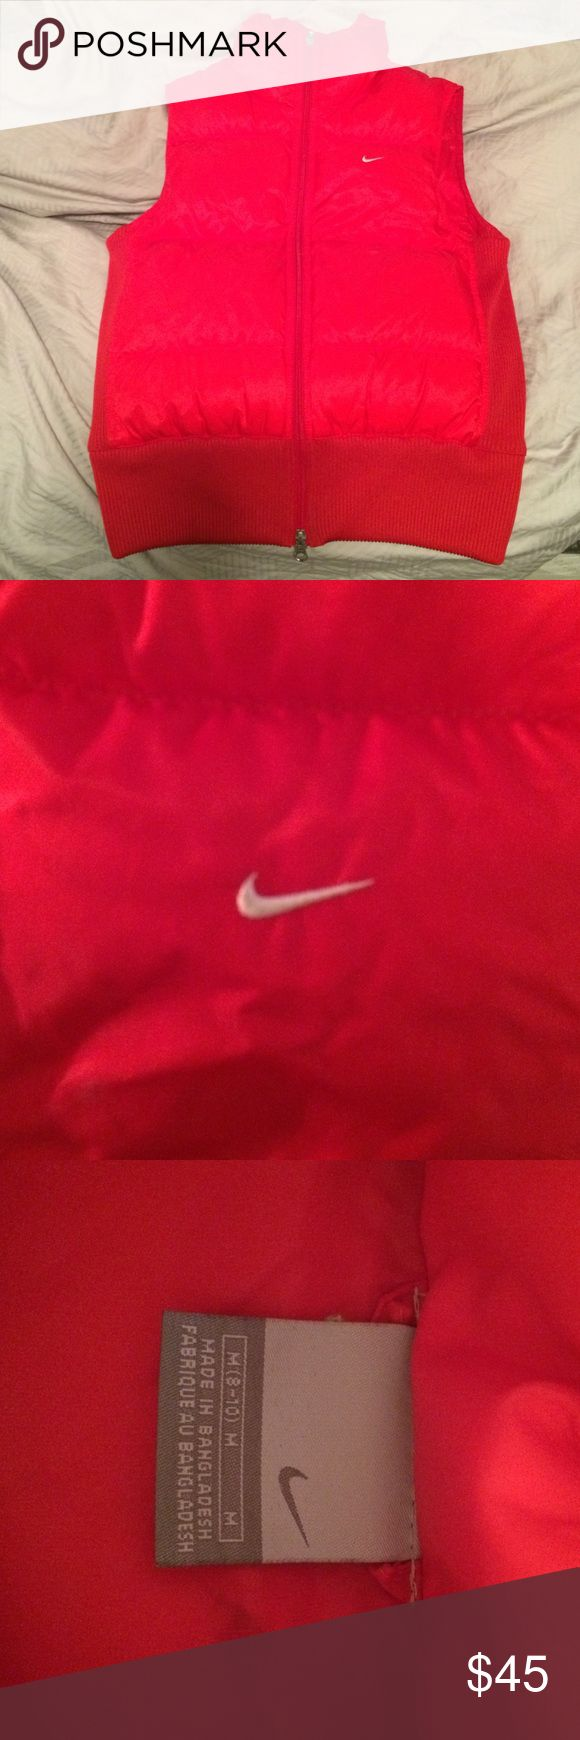 Nike Puffer Vest Red Nike Puffer Vest. Excellent Condition. Although it's in a junior size I'm a petite woman and this fits me perfect and I have a larger chest size so it fits like a womens xs/s Nike vest. Nike Jackets & Coats Puffers